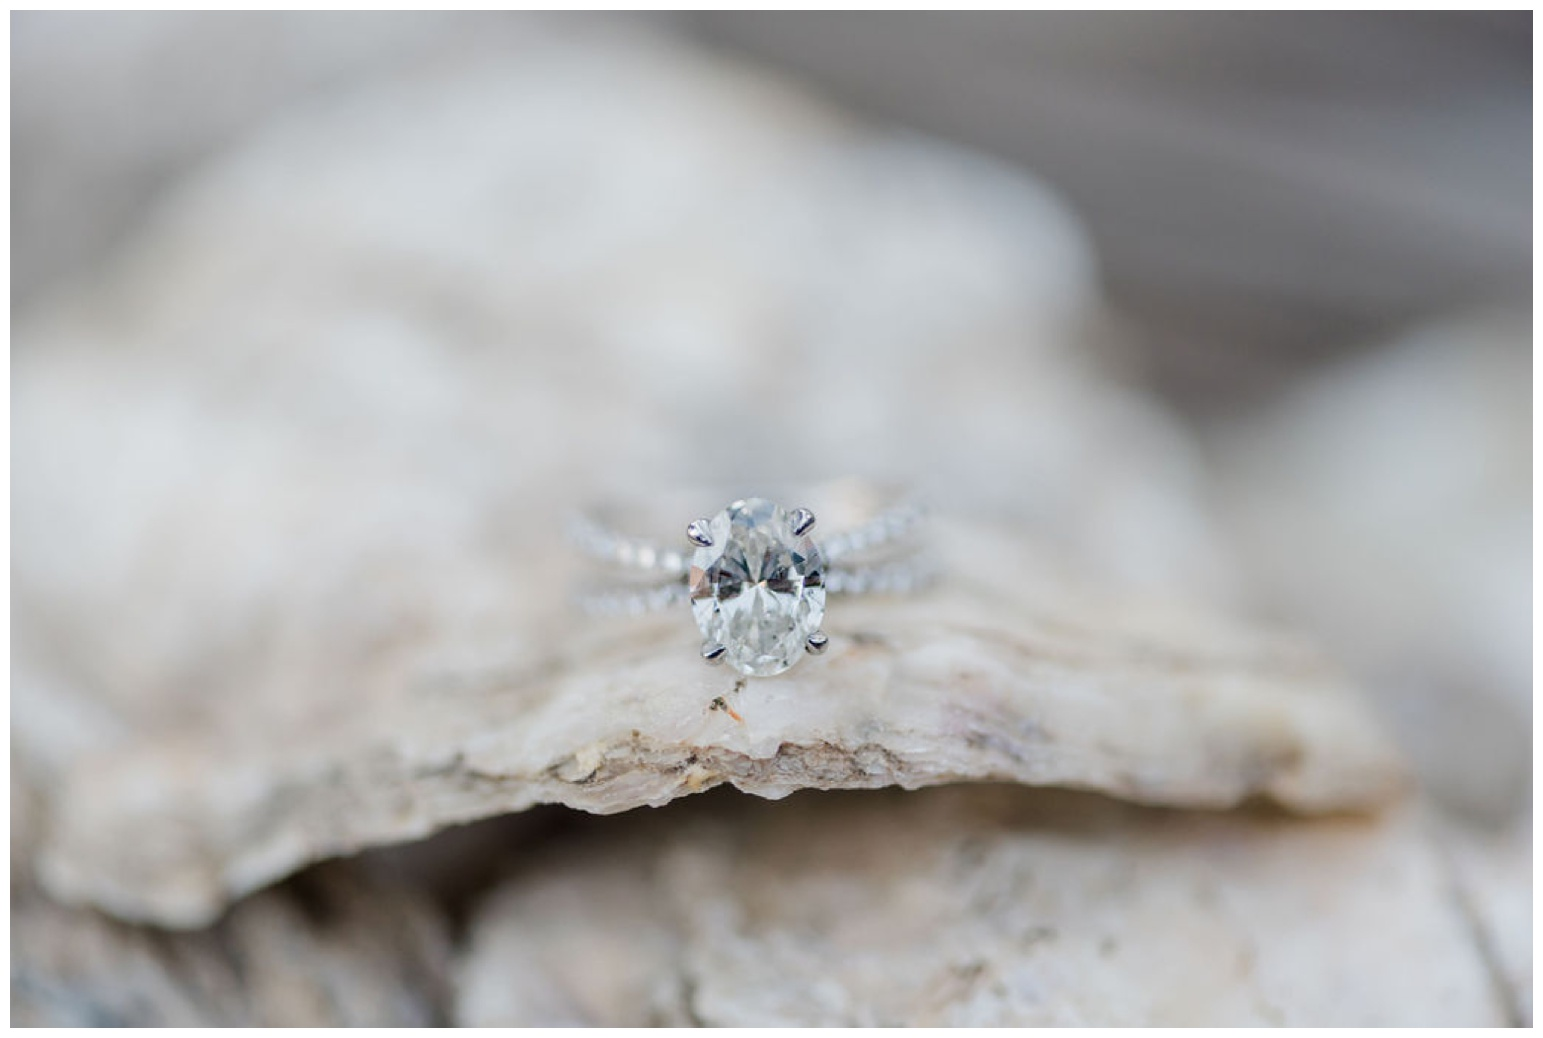 coastal - chesapeake bay - nautical - ocean - beach inspired engagement ring - diamond ring photo for the couple who loves the beach sailing the ocean the bay being outdoors